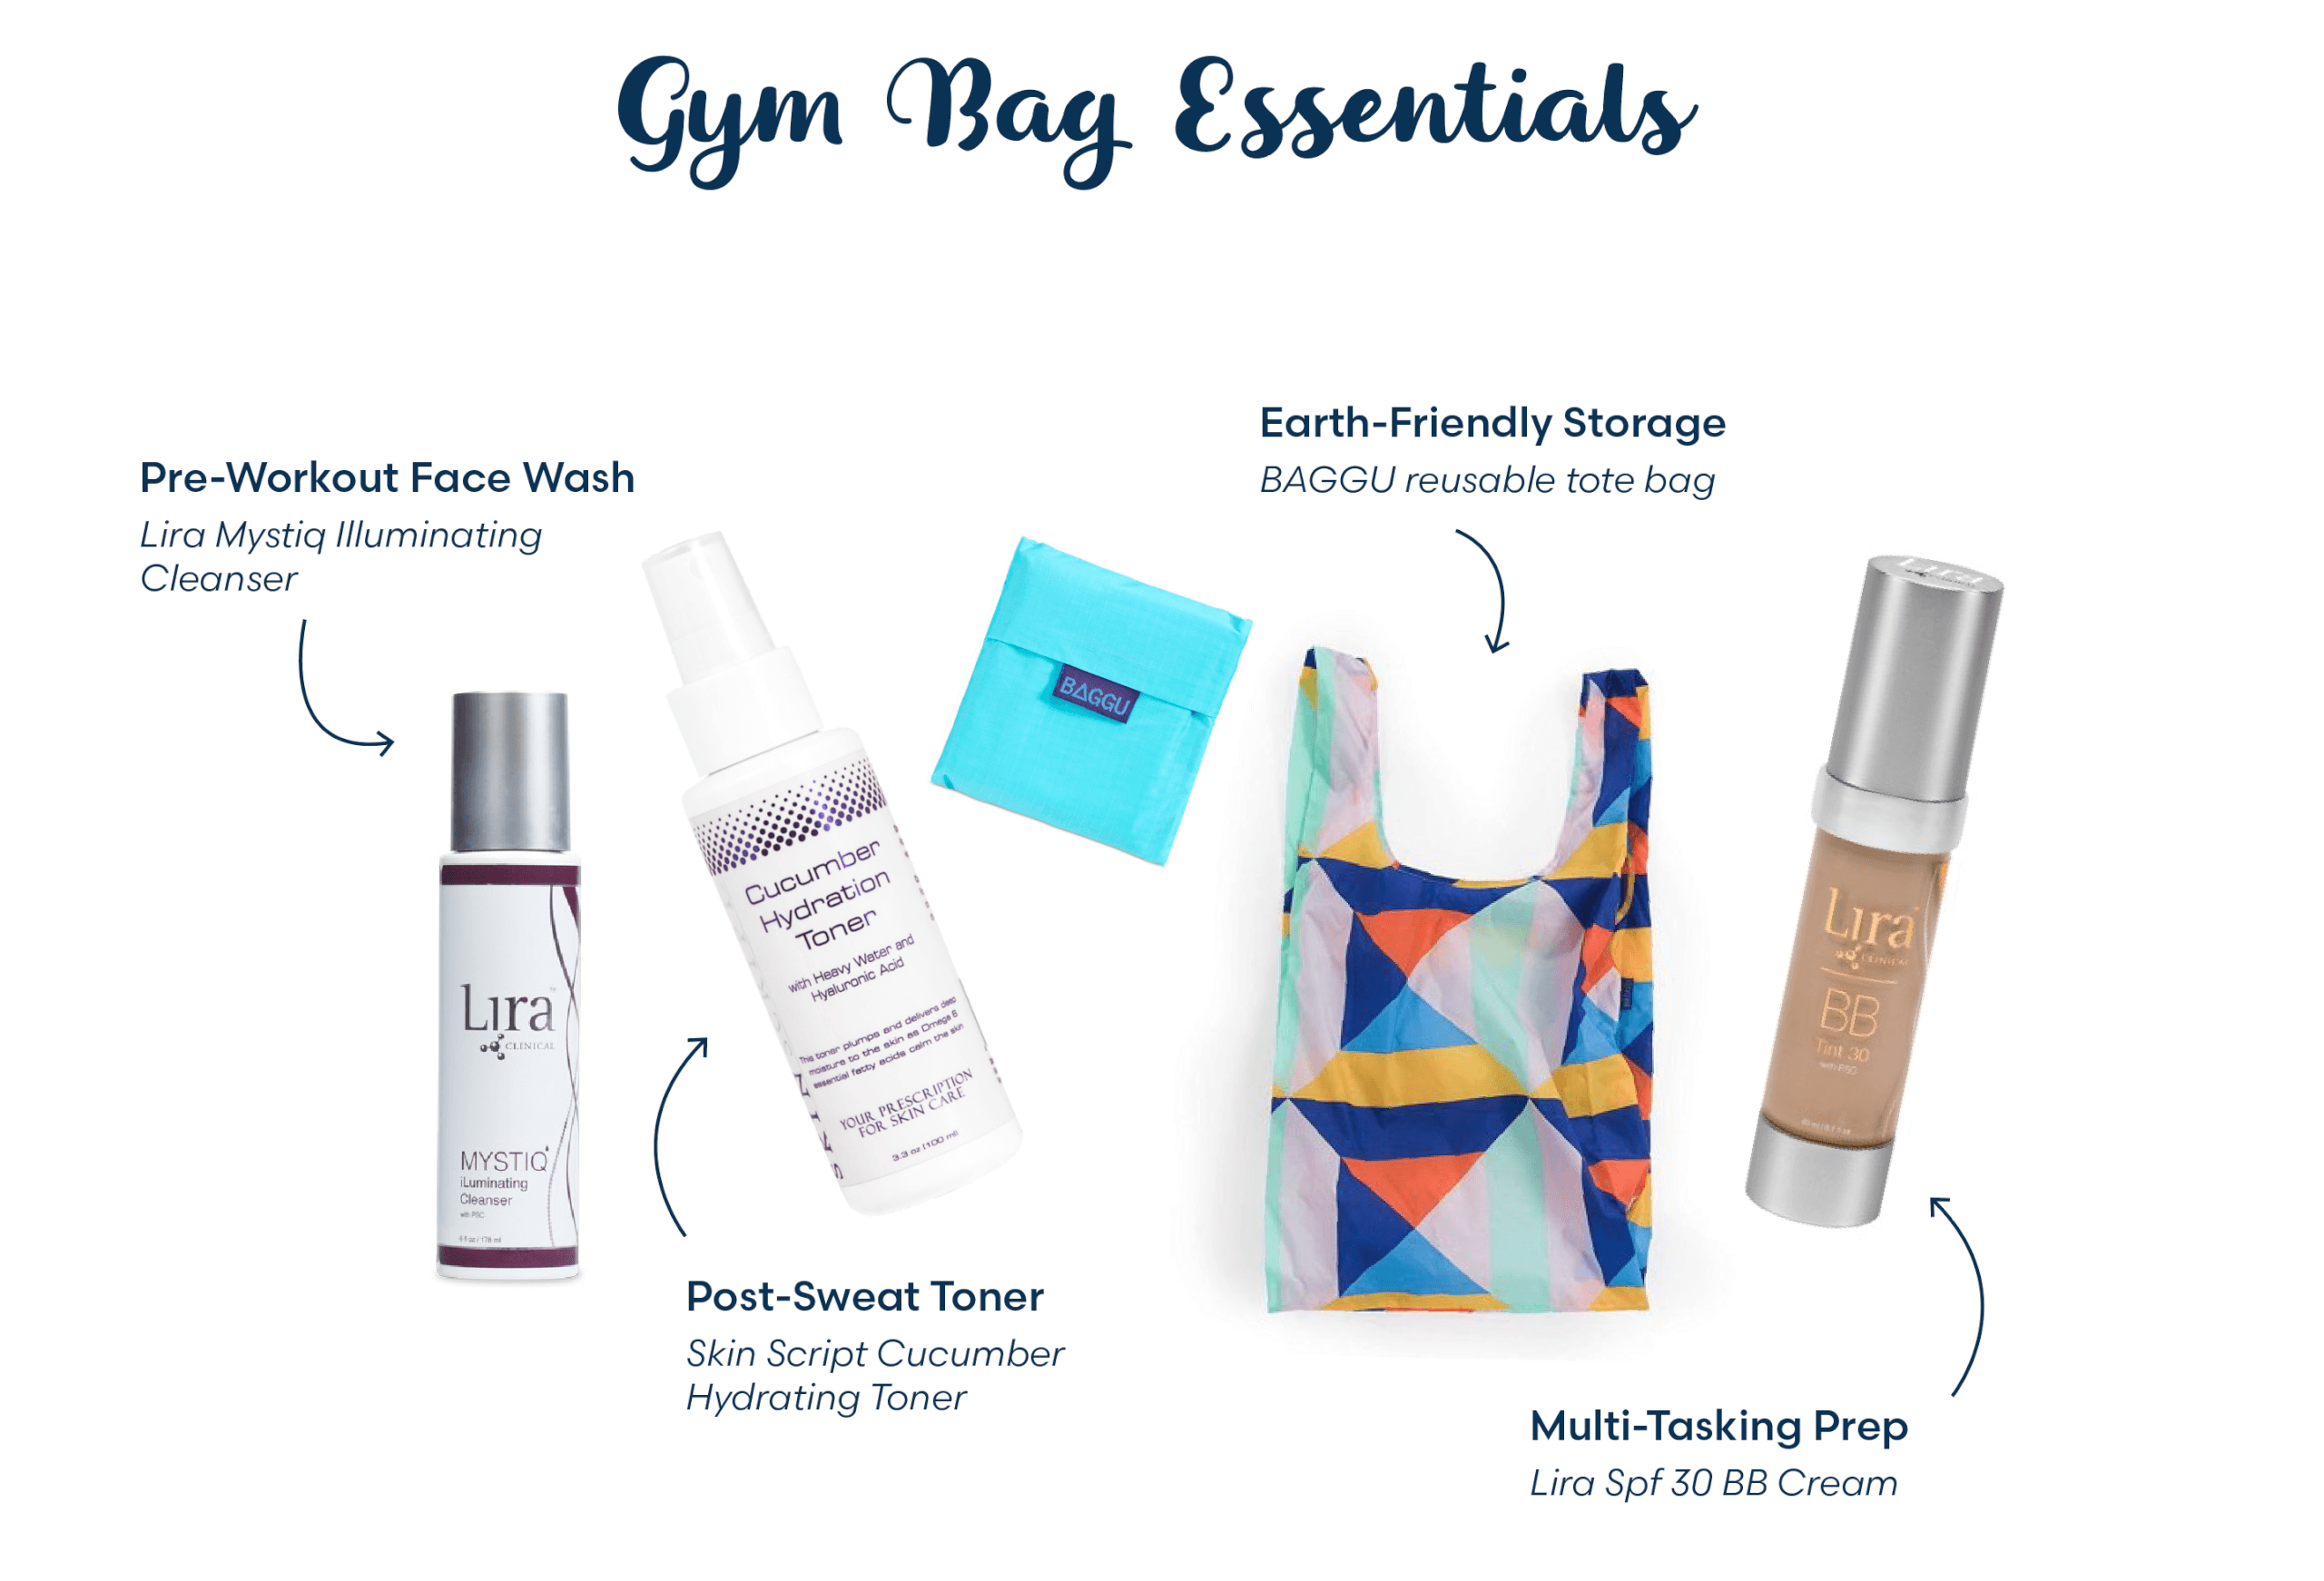 A Skin Care Expert's Gym Bag Essentials